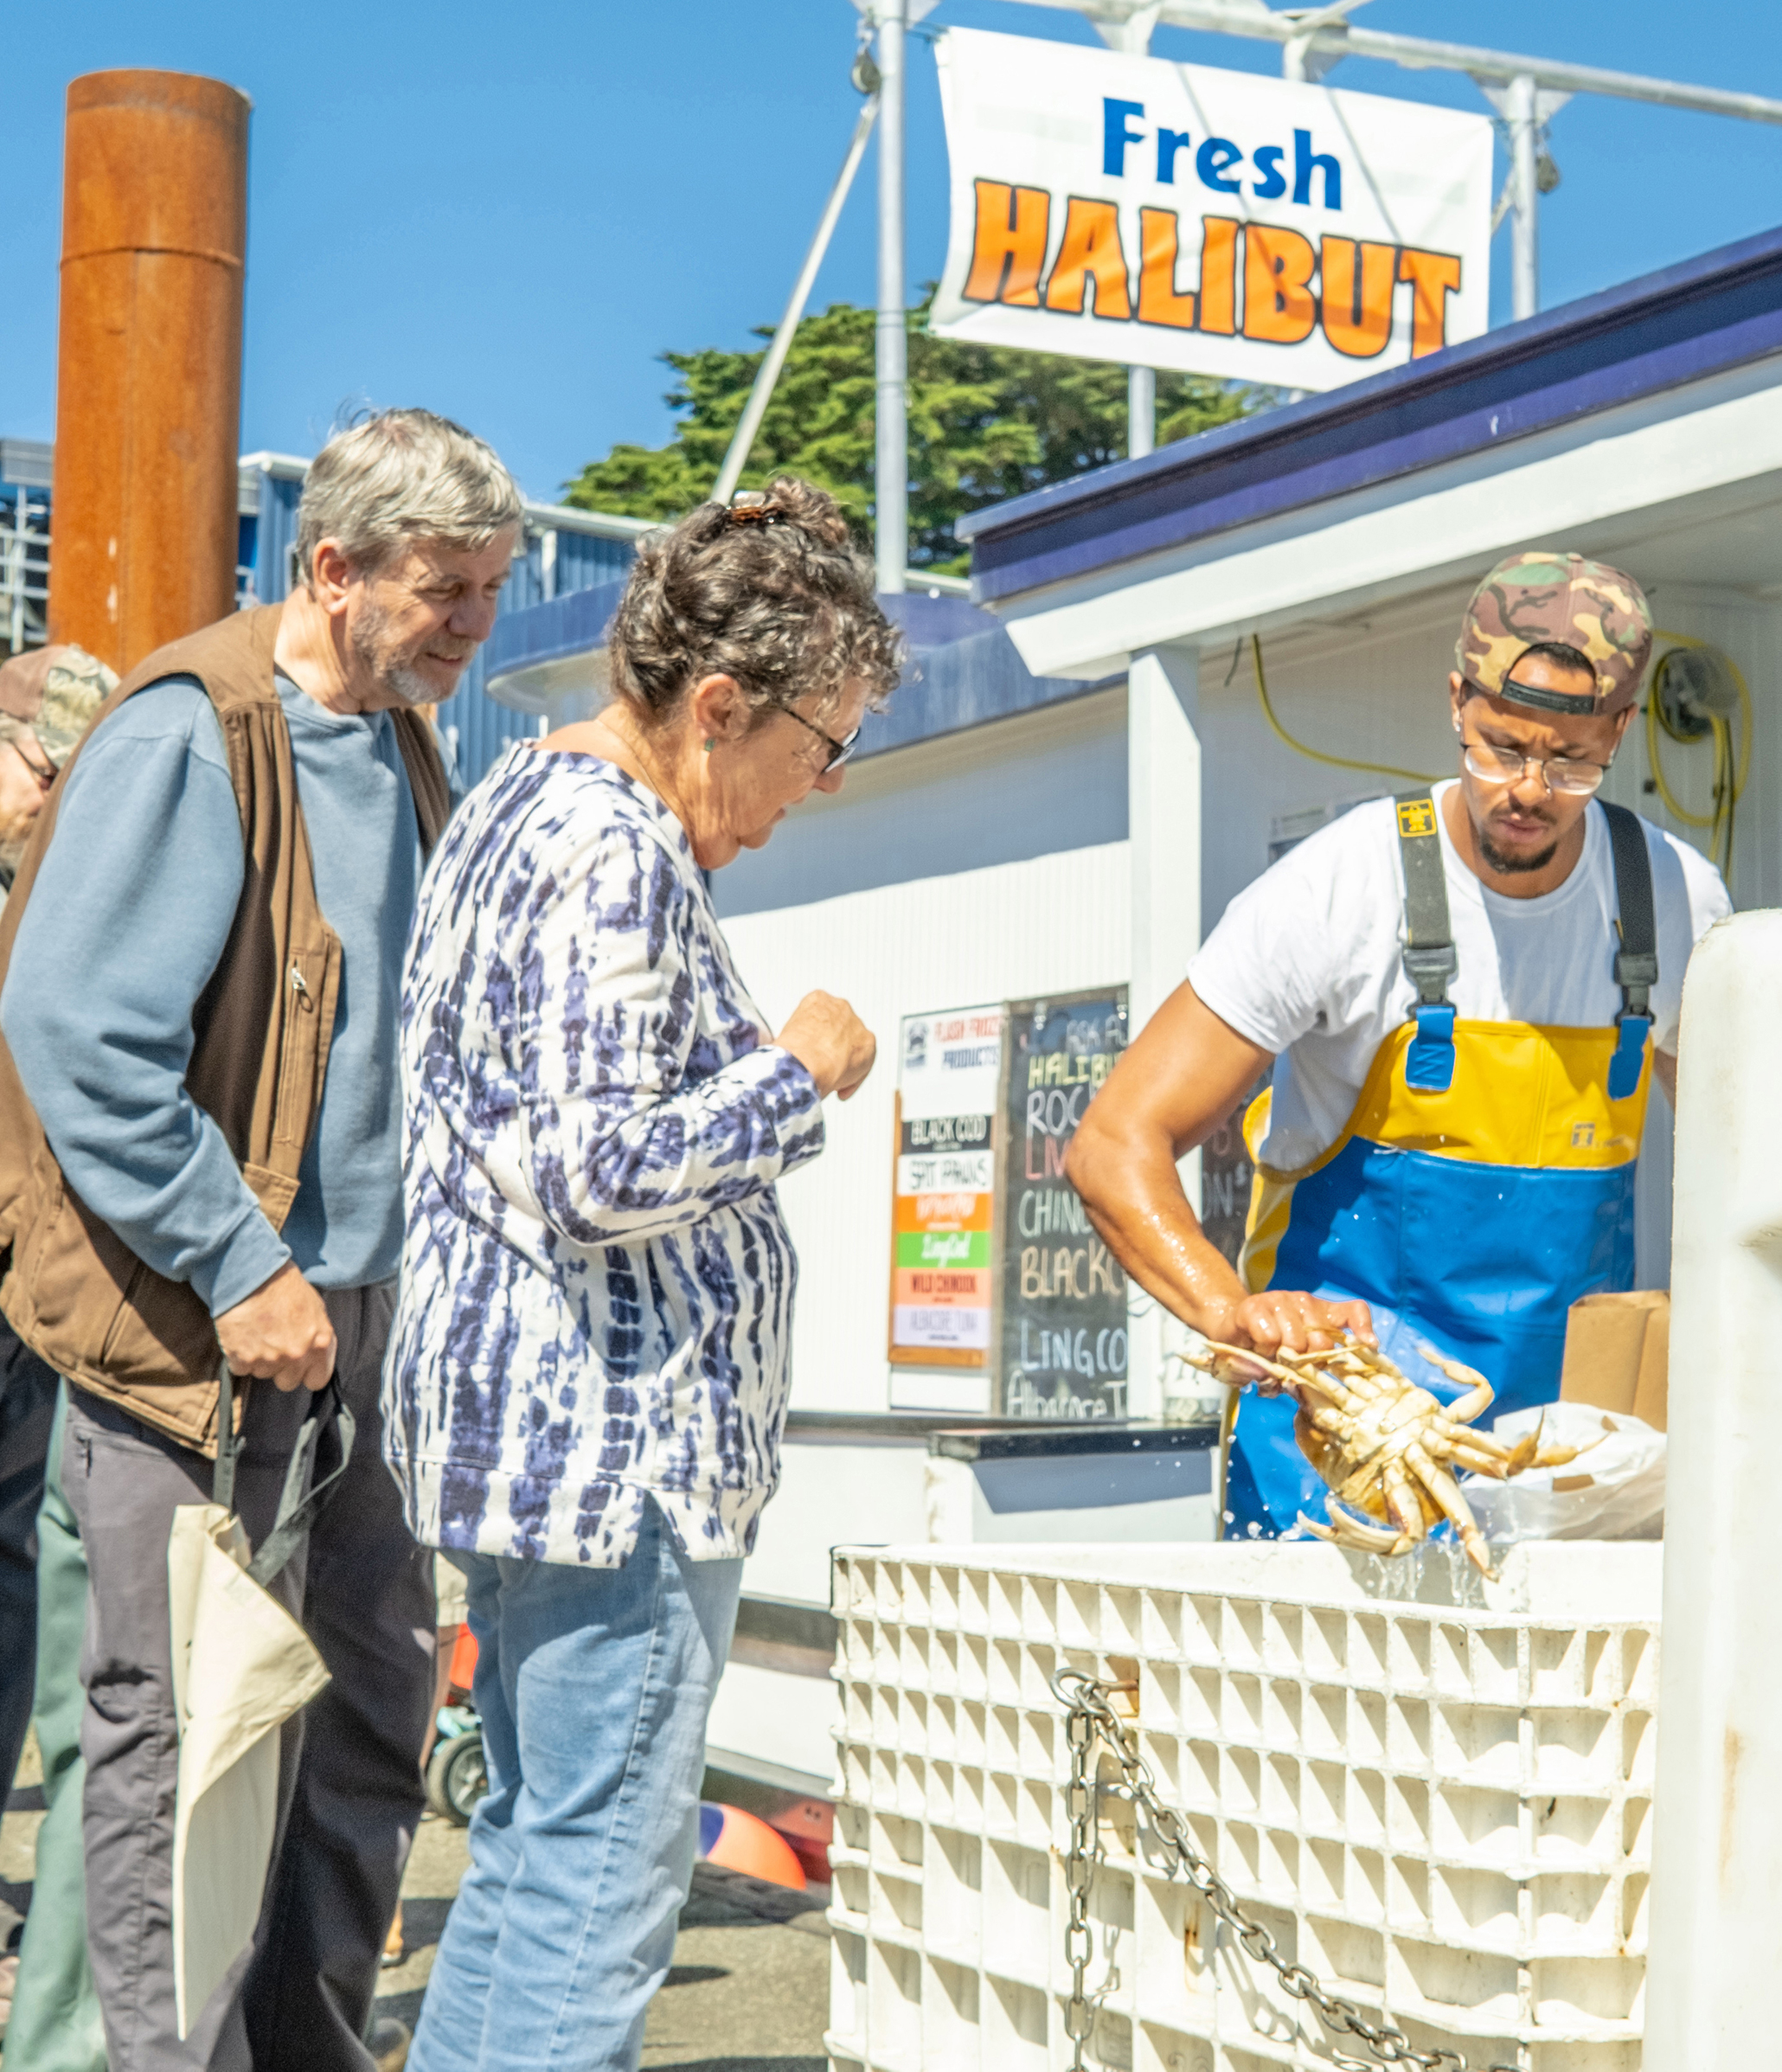 A worker on a dock shows a Dungeness crab to two people.